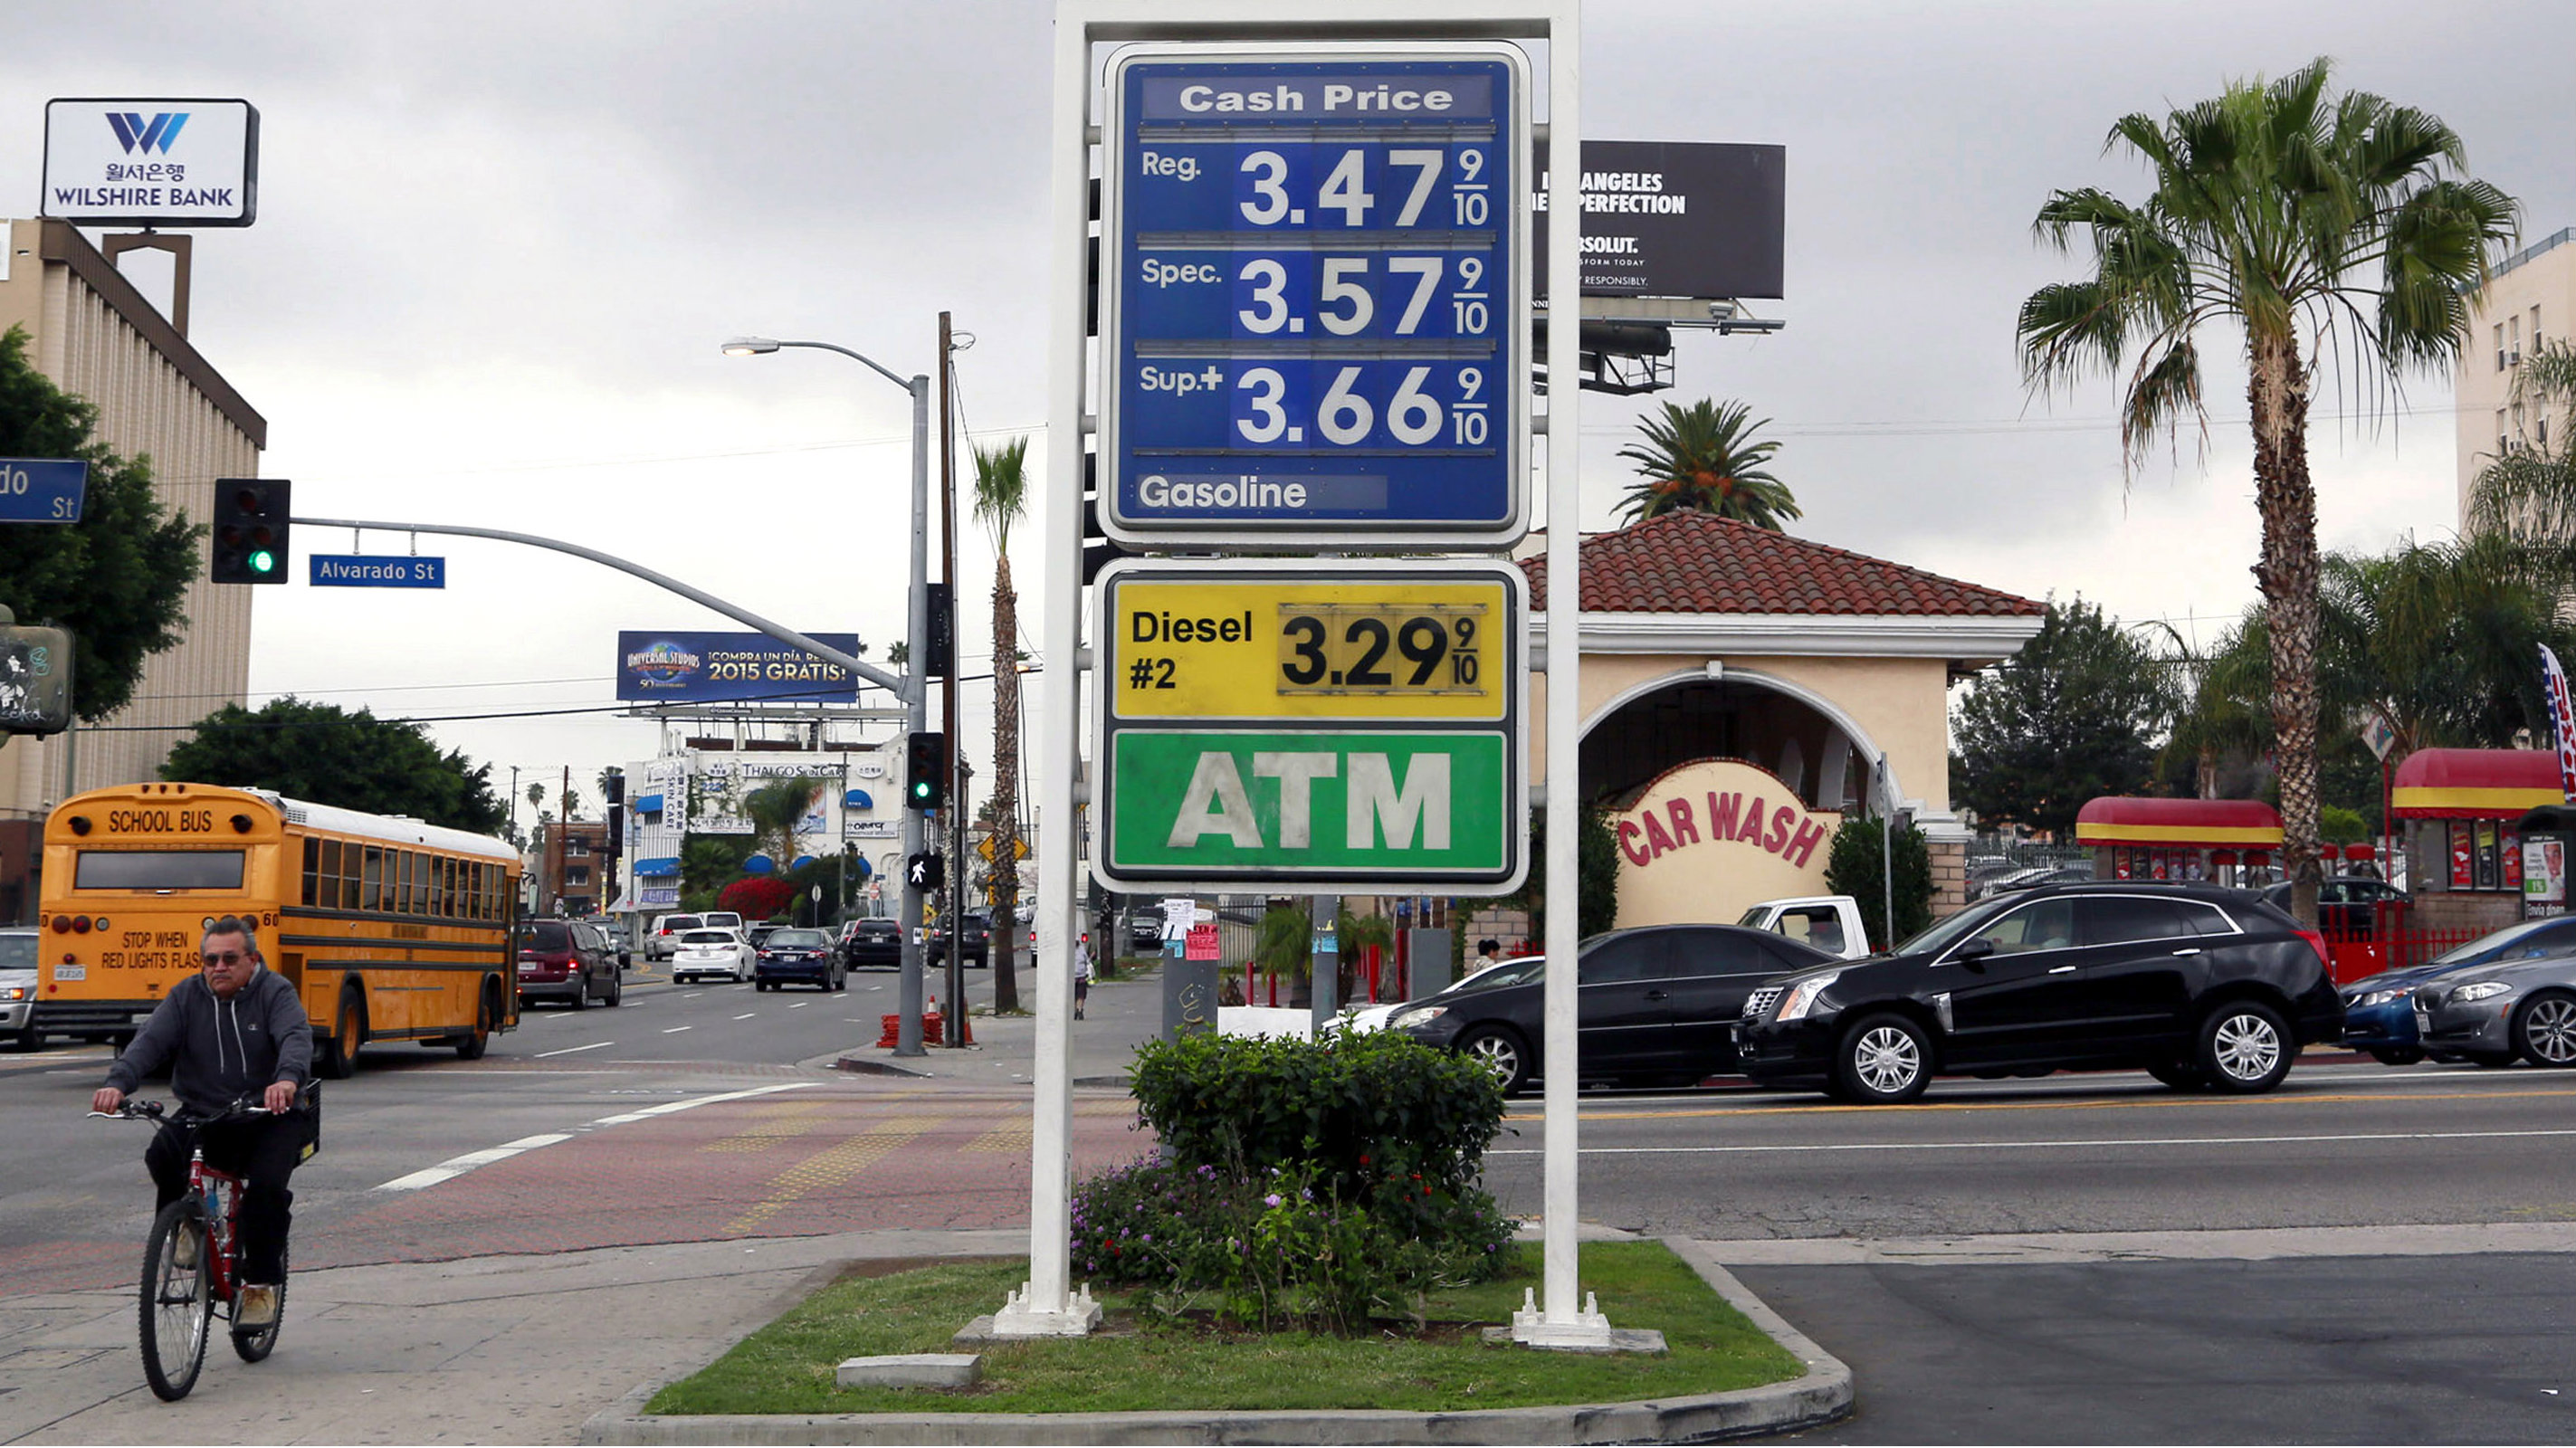 In this Feb. 27, 2015 file photo, a cyclist rides by a sign at a gas station in Los Angeles posting the latest gas prices. Lawmakers will hear testimony Tuesday, March 24, 2015, on the recent wild swings in gasoline prices and will look at what state regulators can do about it. Gas prices soared as much as 25 cents a gallon last month after an explosion stopped gasoline production at an Exxon Mobil refinery in Southern California. Oil producers and consumer advocates are among those scheduled to testify.